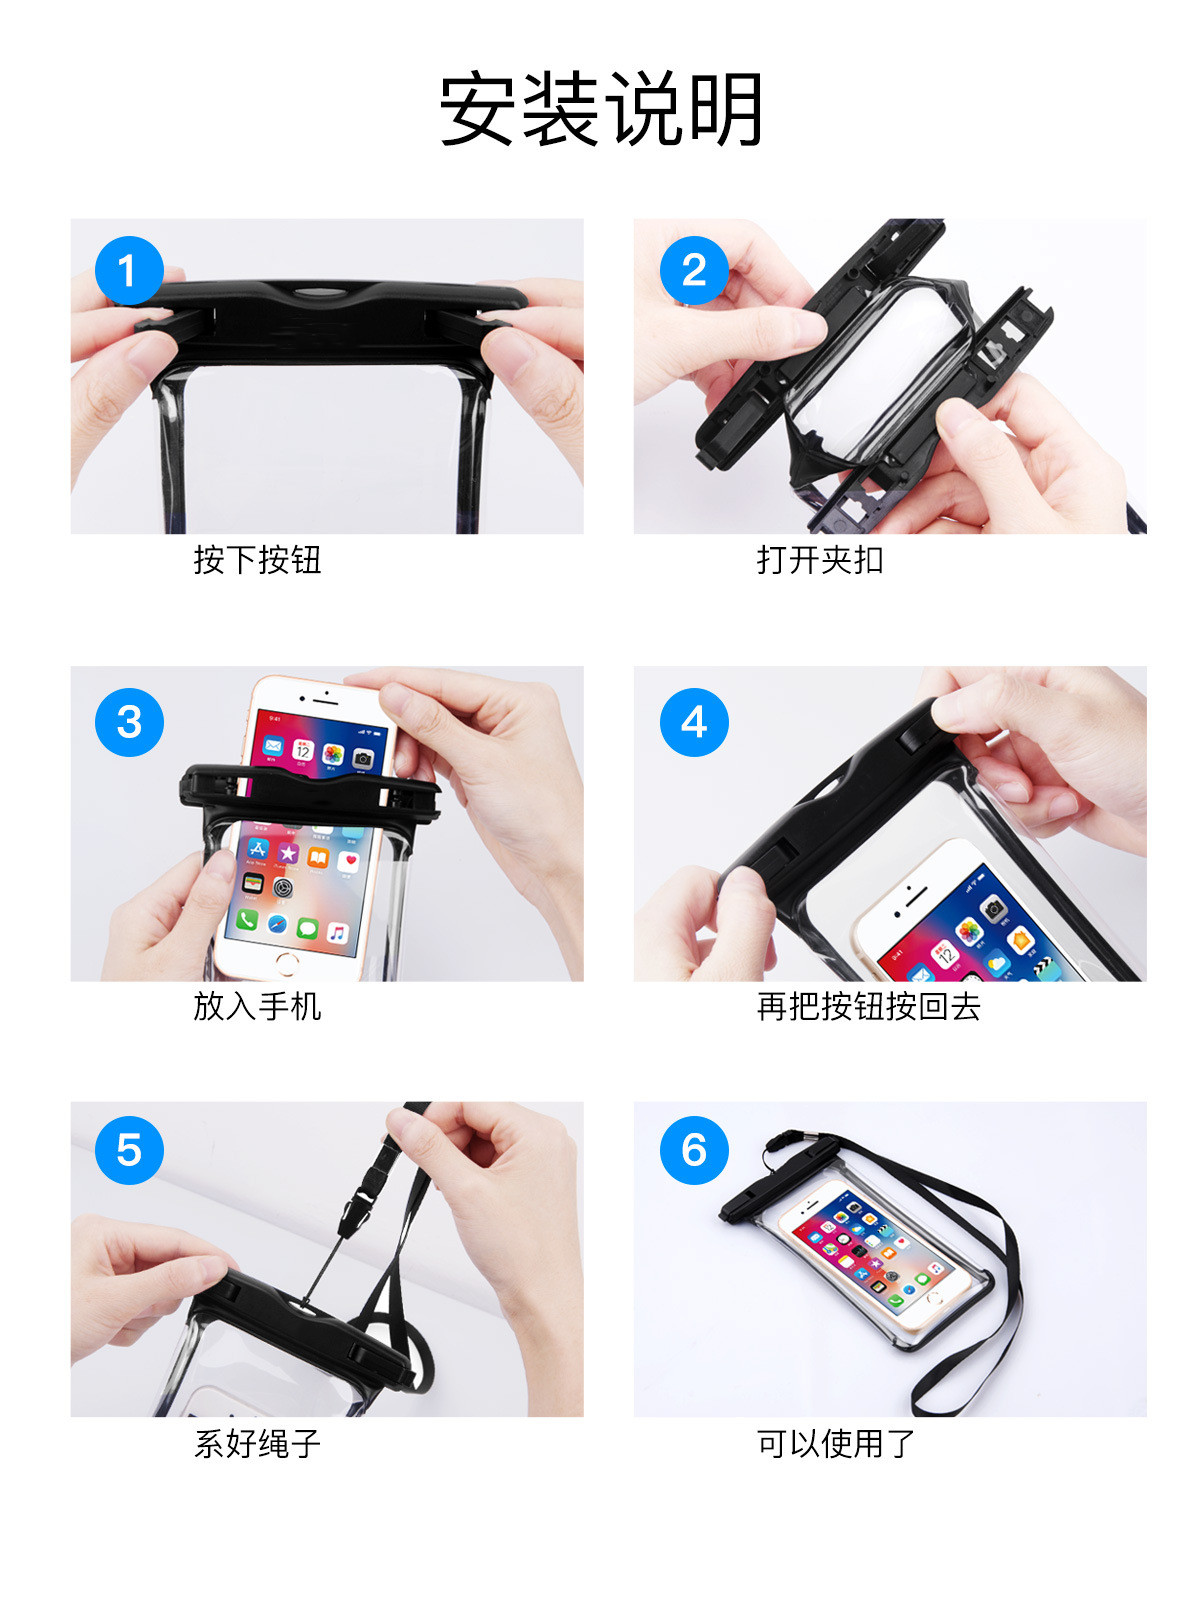 H11678254376b48e982710dd0bacc266c0 - Full View Waterproof Swimming Pouch Case for Phone Underwater Snow Rainforest Transparent Dry Bag Big Mobile Phone Bag Sealed